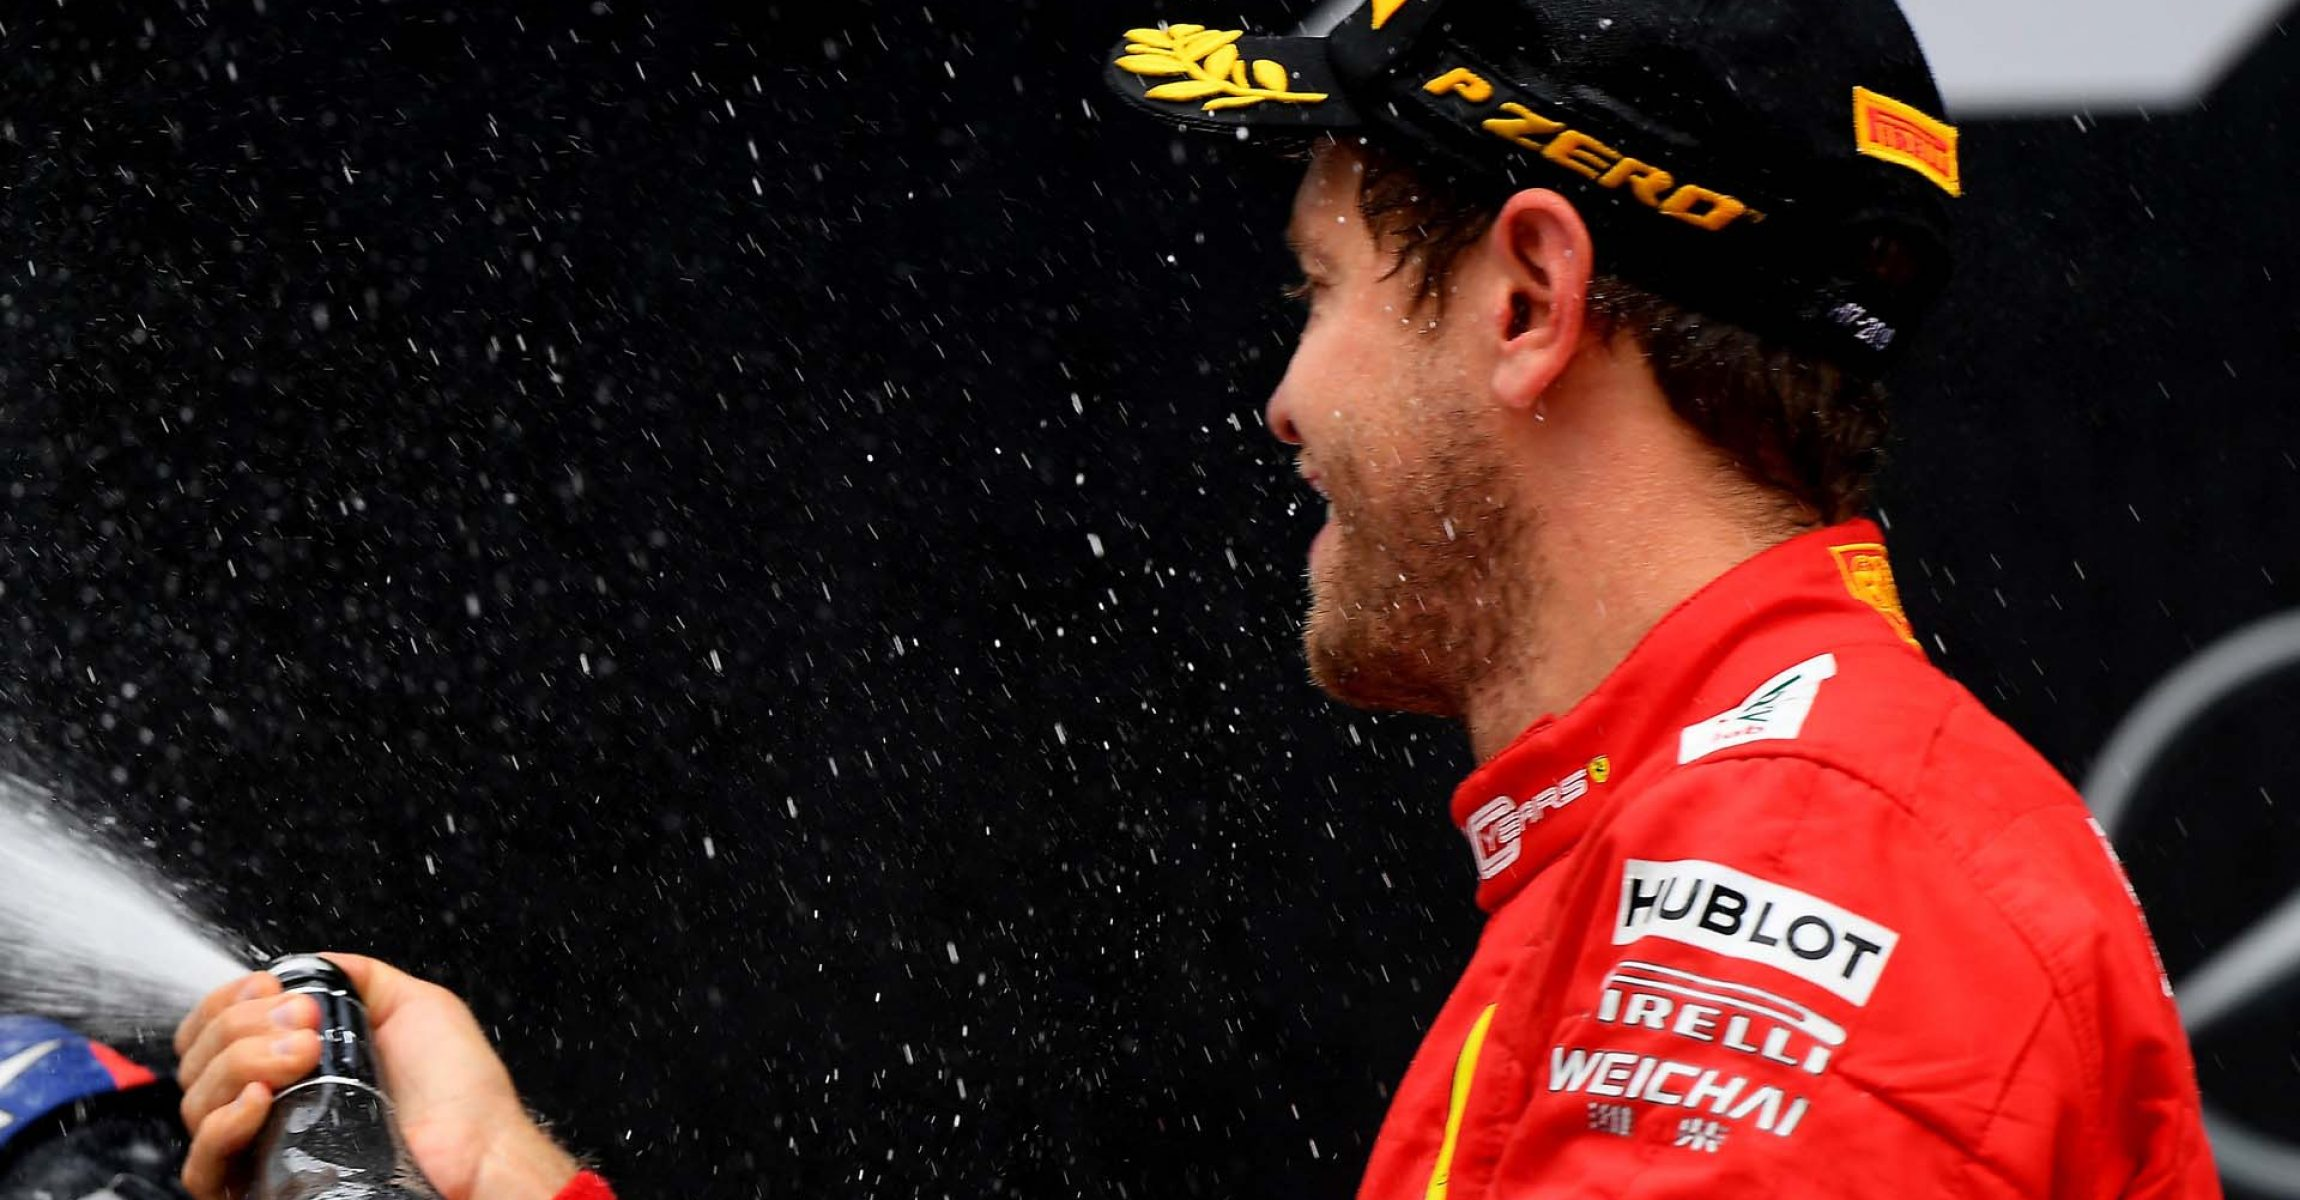 GP GERMANIA F1/2019 - DOMENICA 28/07/2019 credit: @Scuderia Ferrari Press Office Sebastian Vettel Ferrari